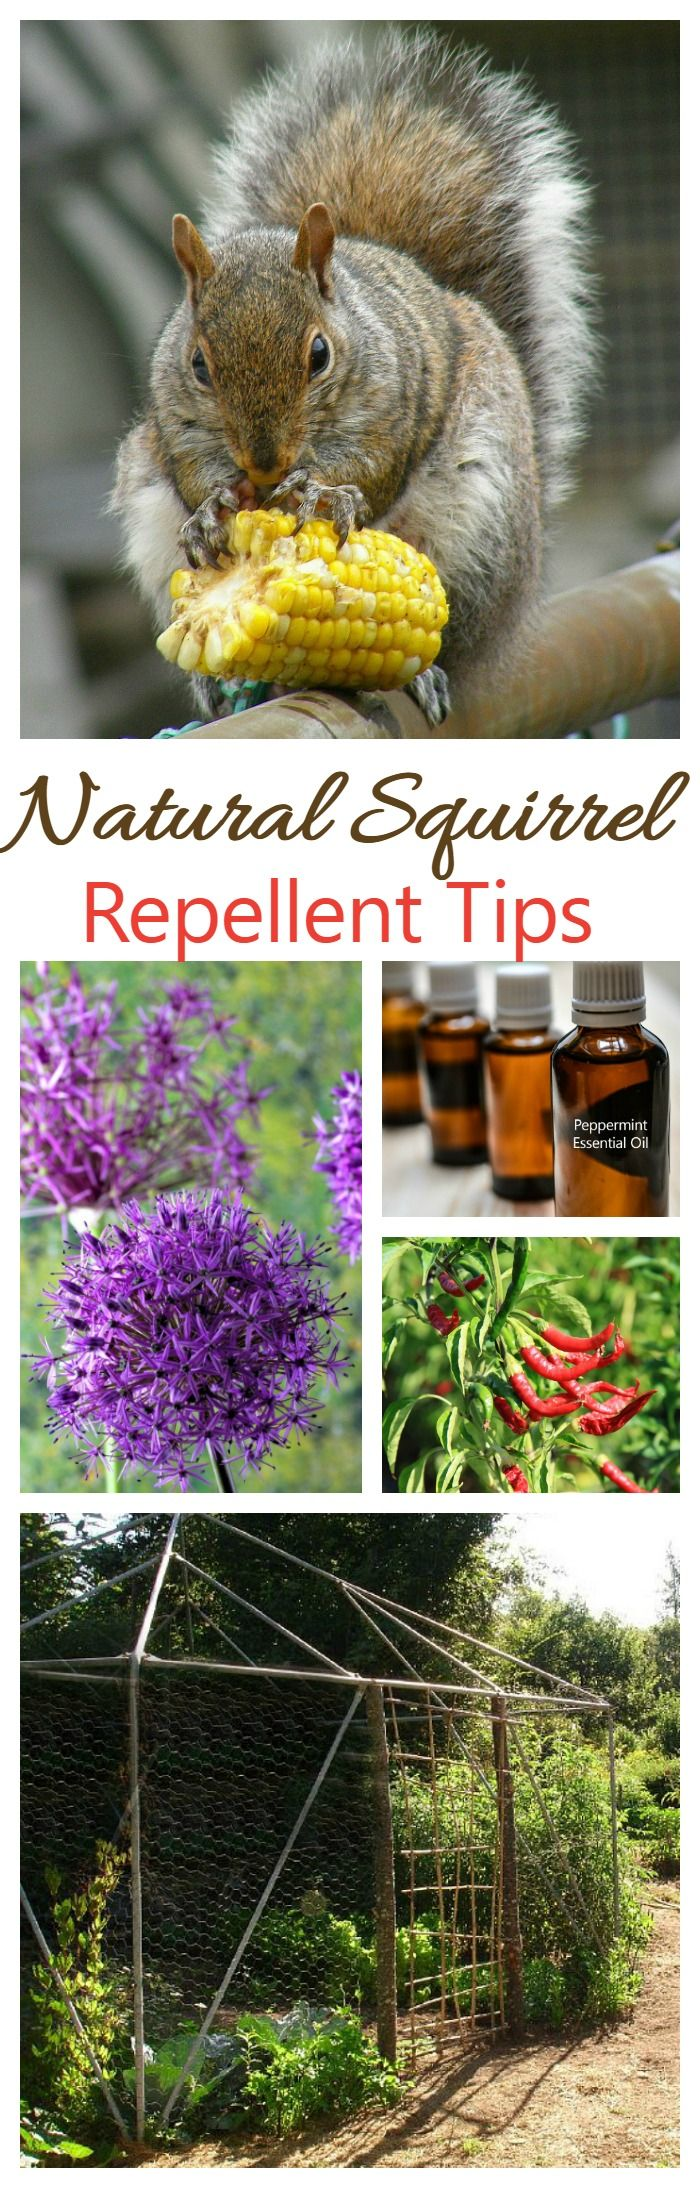 17 Best Ideas About Squirrel Repellant On Pinterest Squirrel Proof Bird Feeders A Squirrel